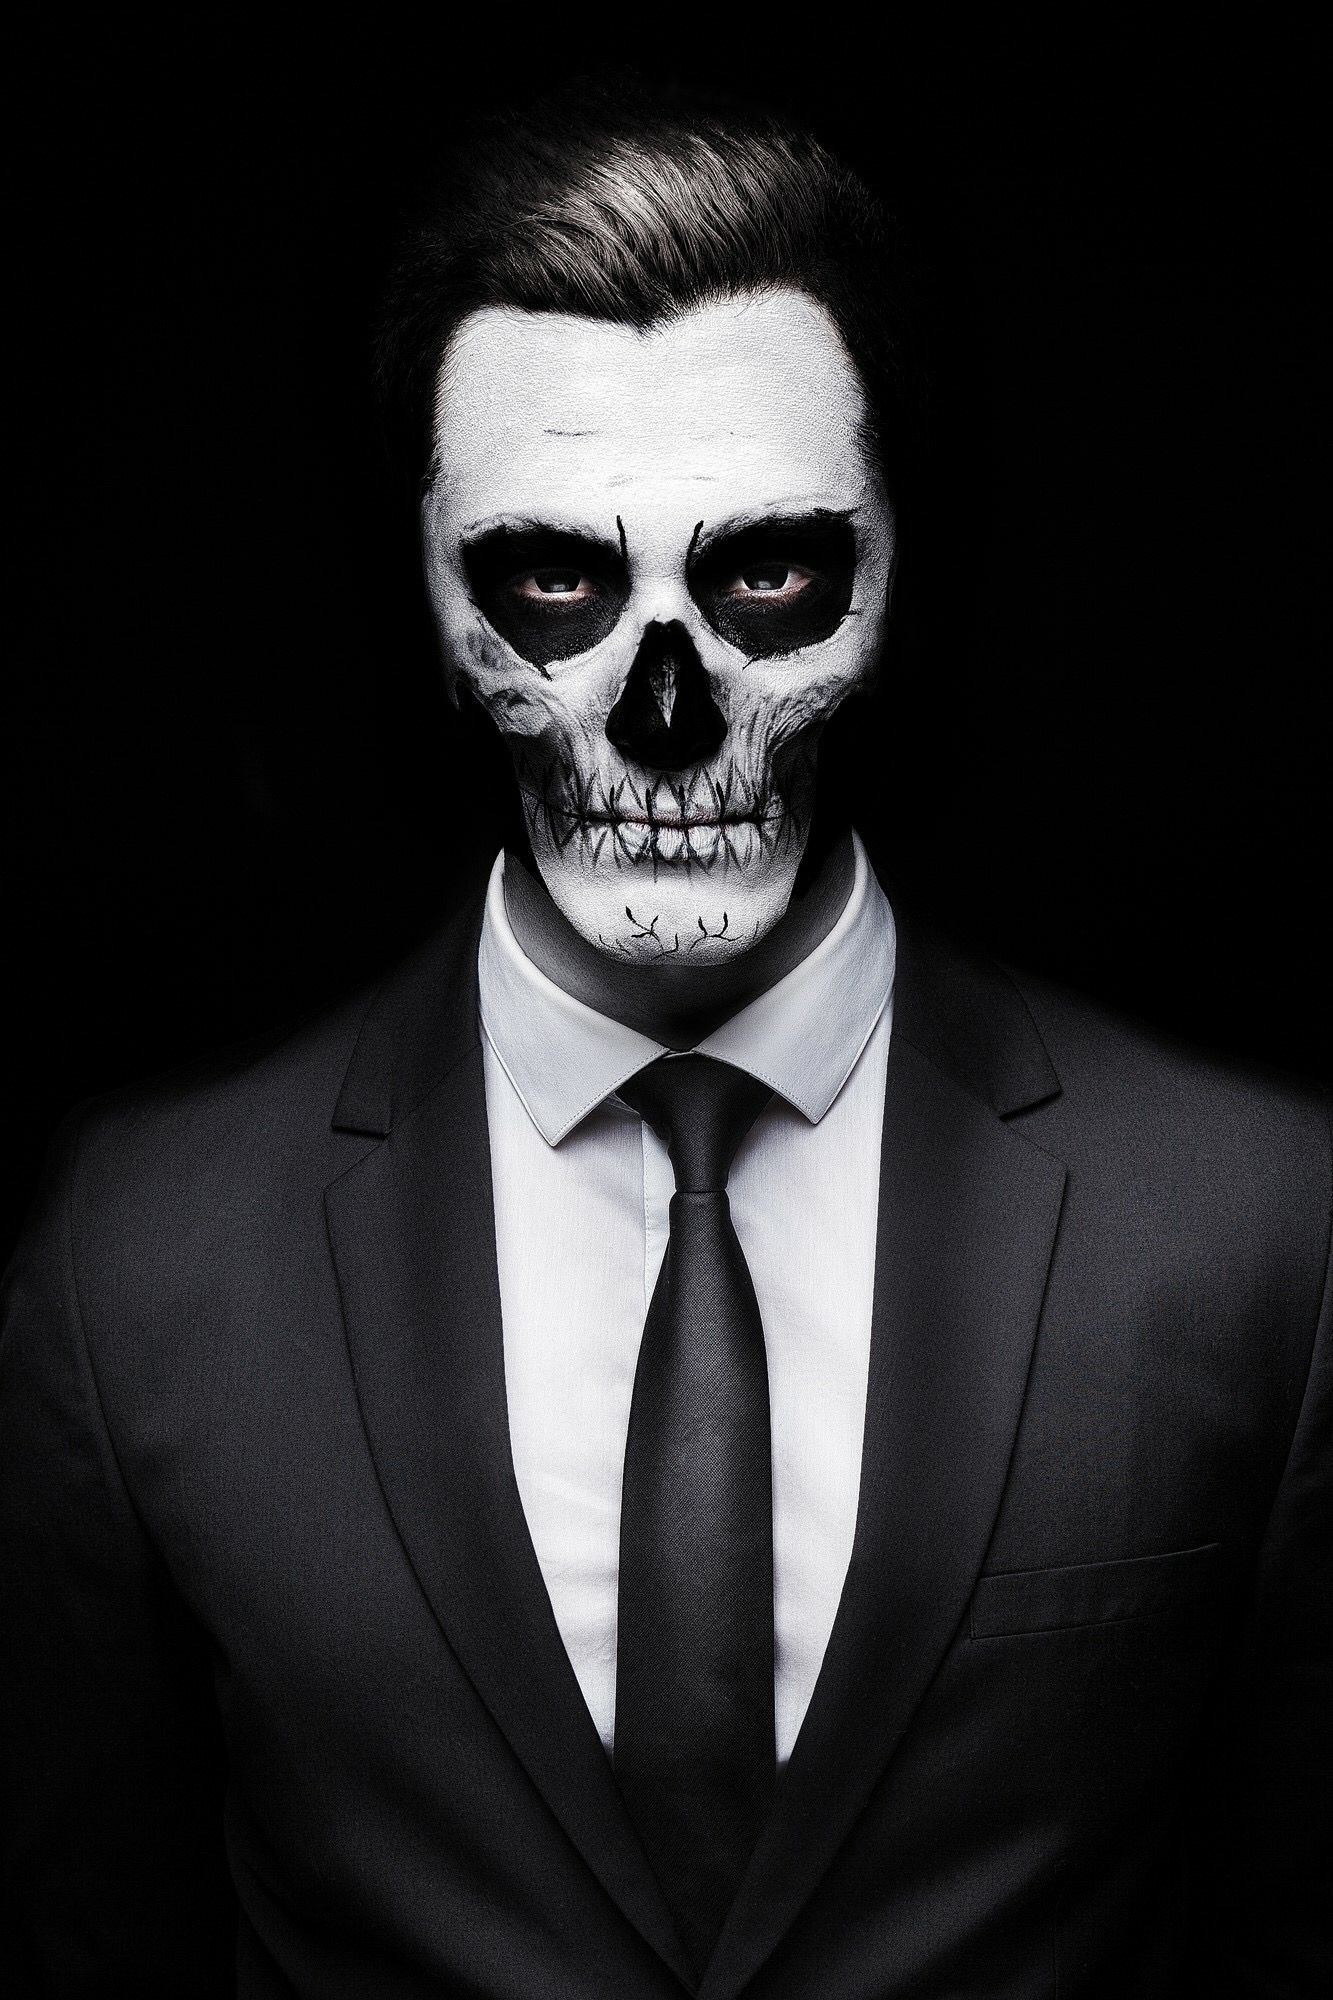 guy with skeleton face wearing a suit men animals in. Black Bedroom Furniture Sets. Home Design Ideas